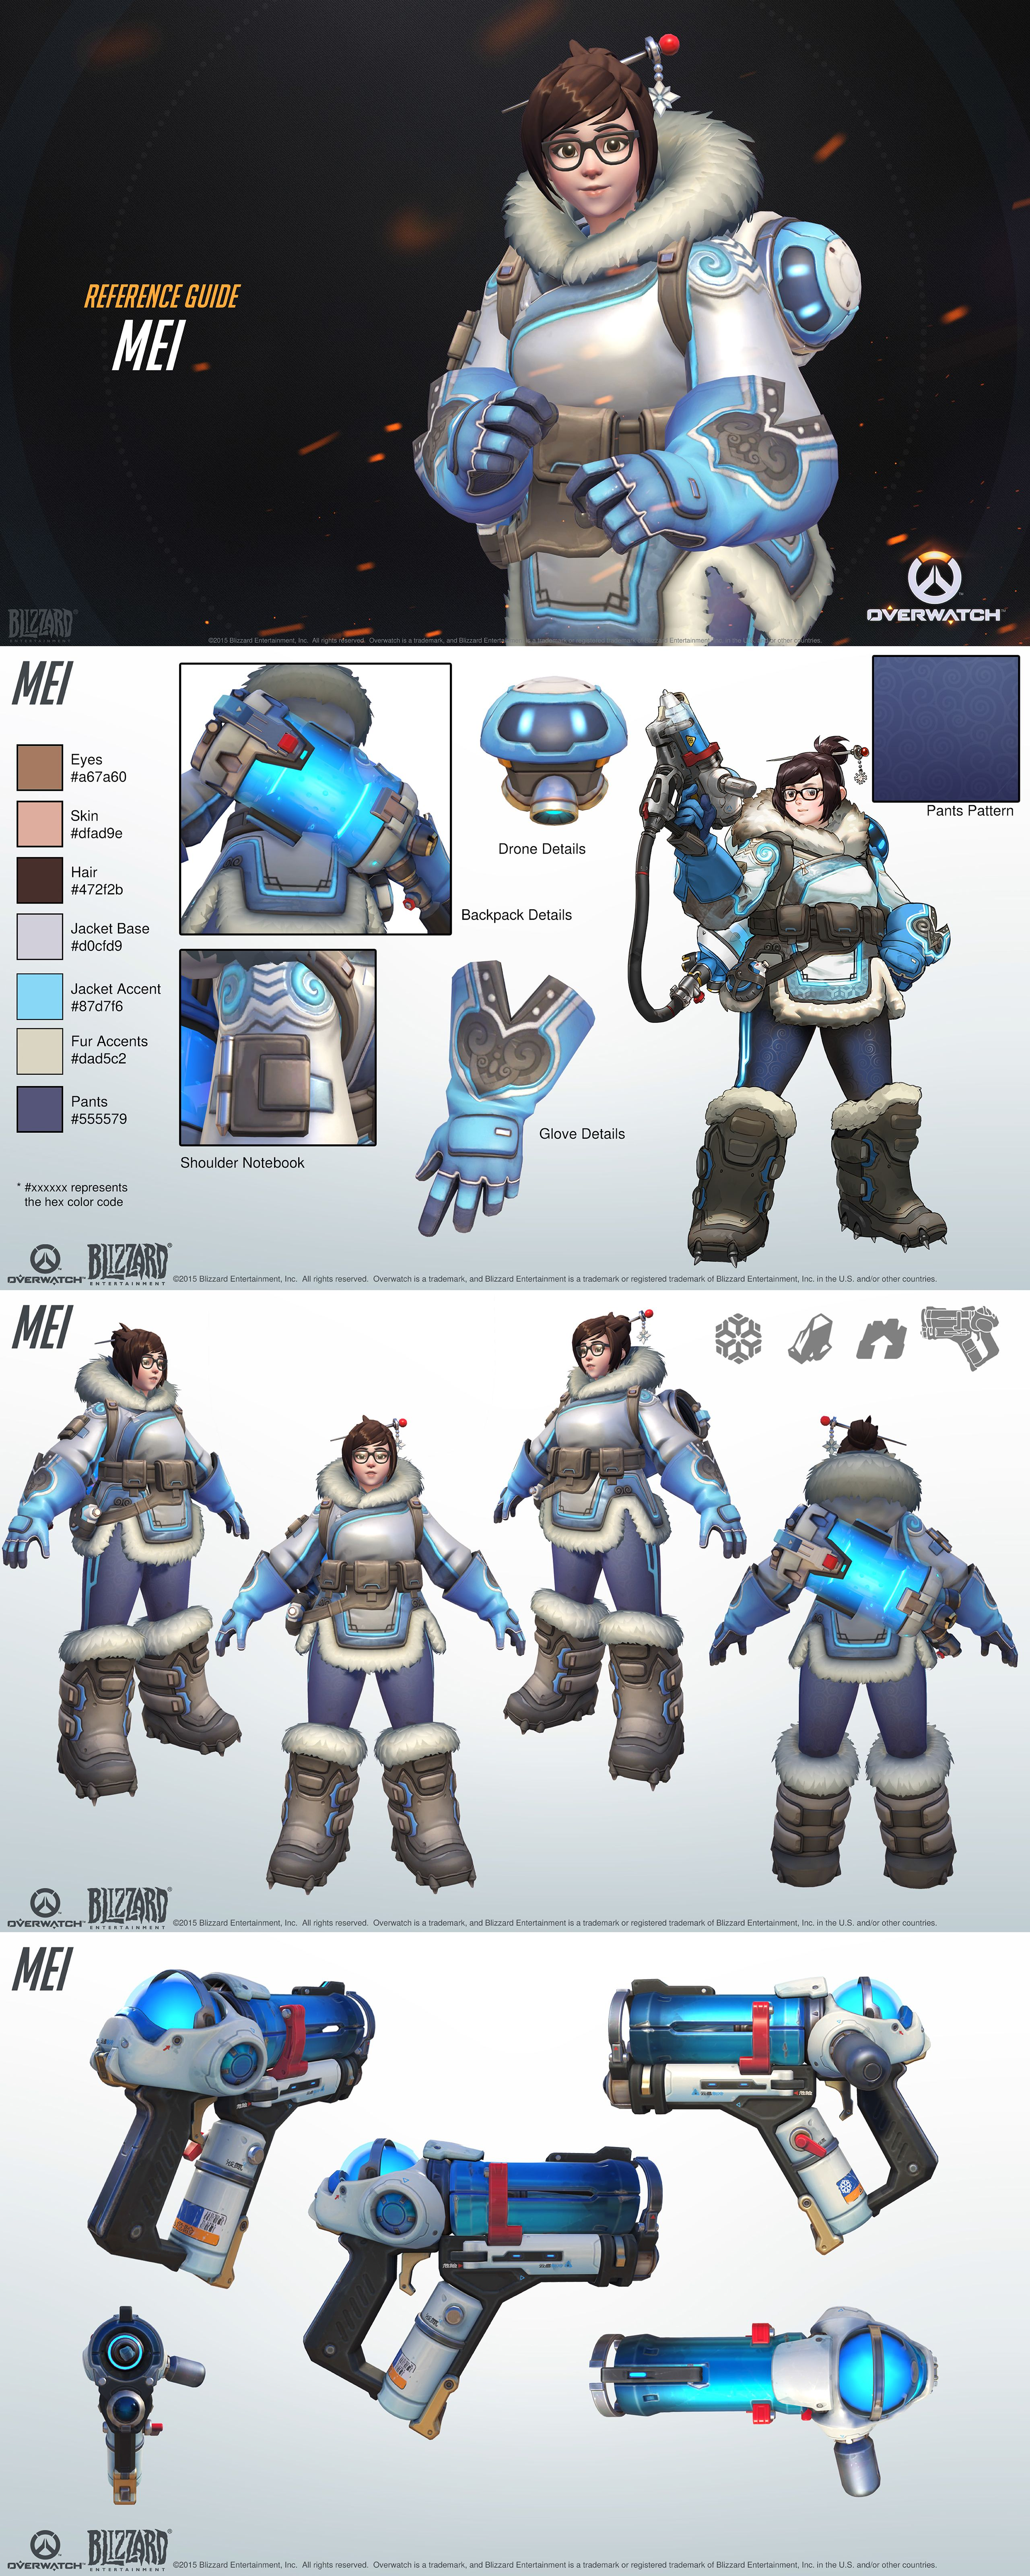 Character Design Overwatch : Overwatch mei reference guide characters pinterest